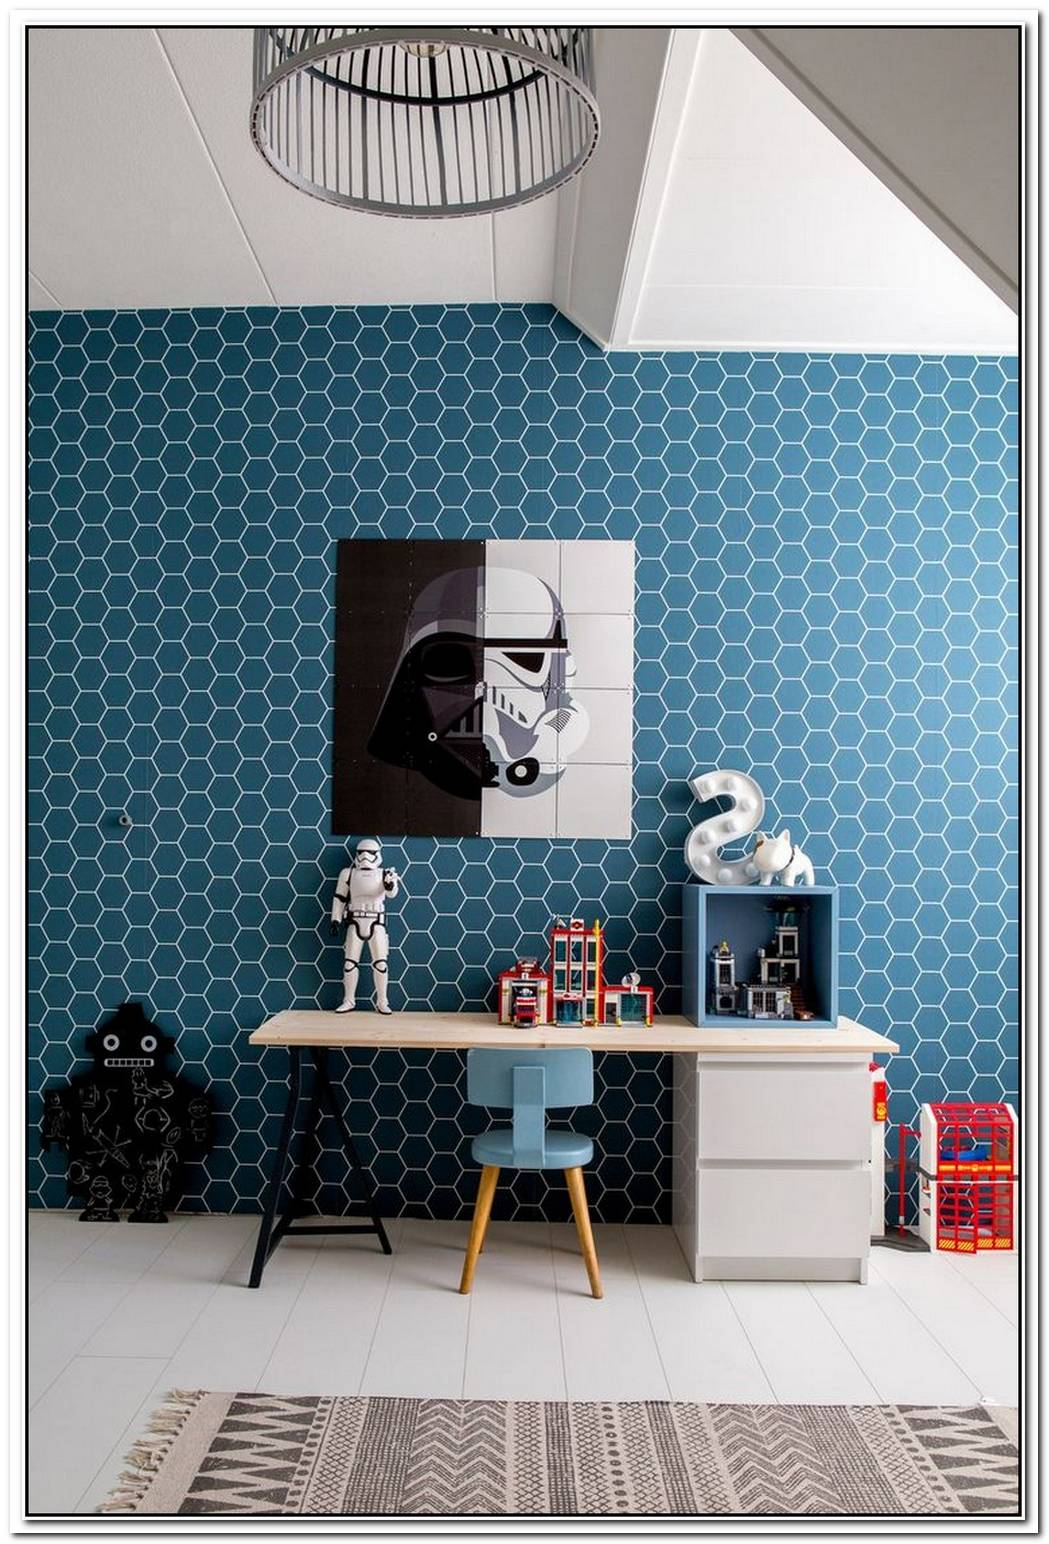 Clever Wall Coverings From Ixxi